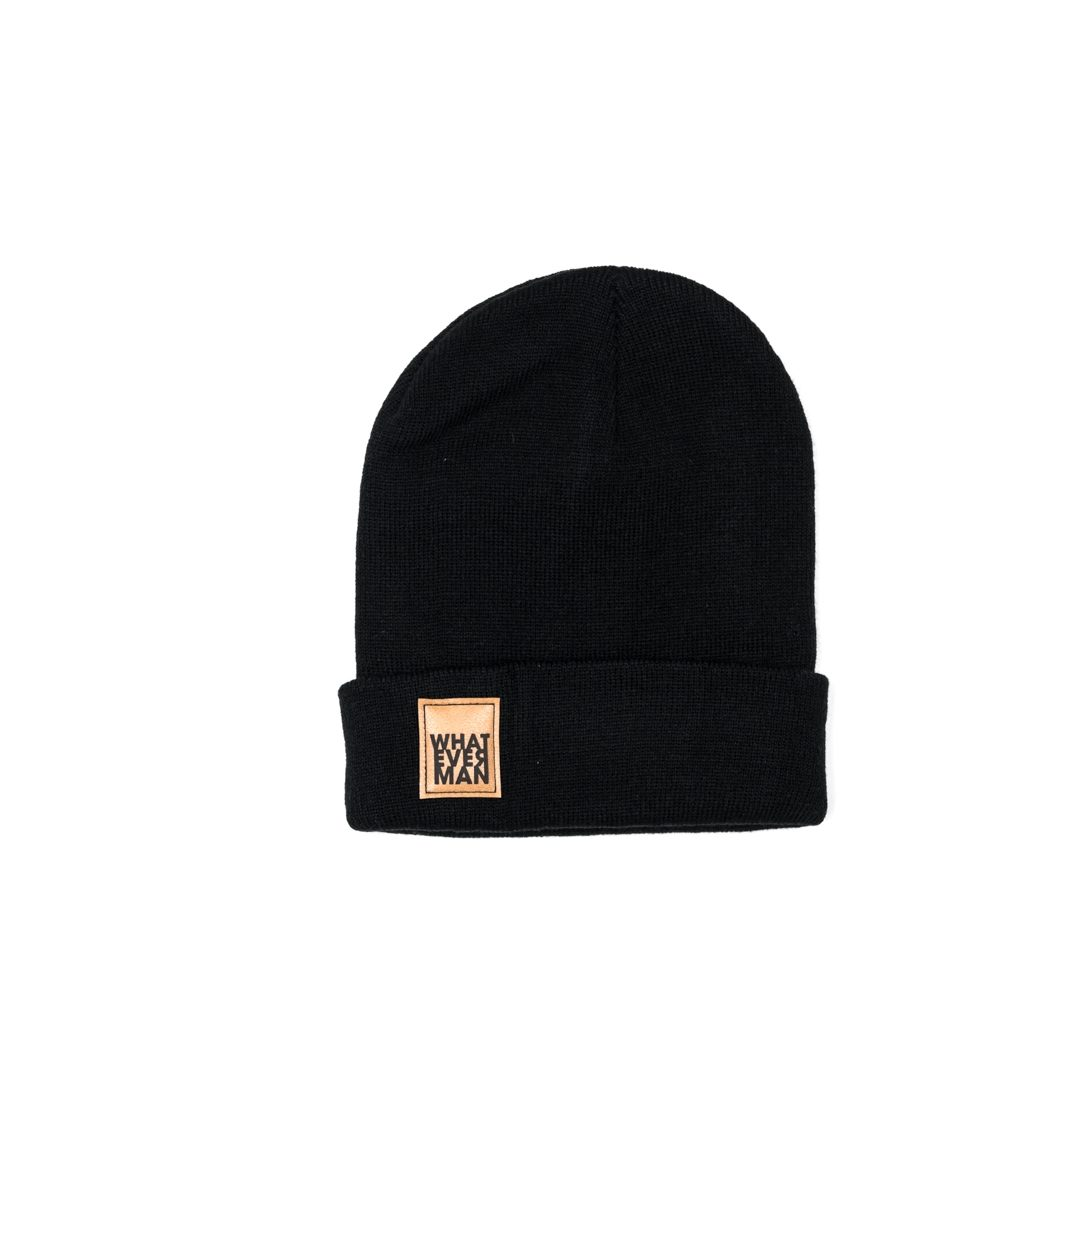 Whatever Man Classic Beanie 3